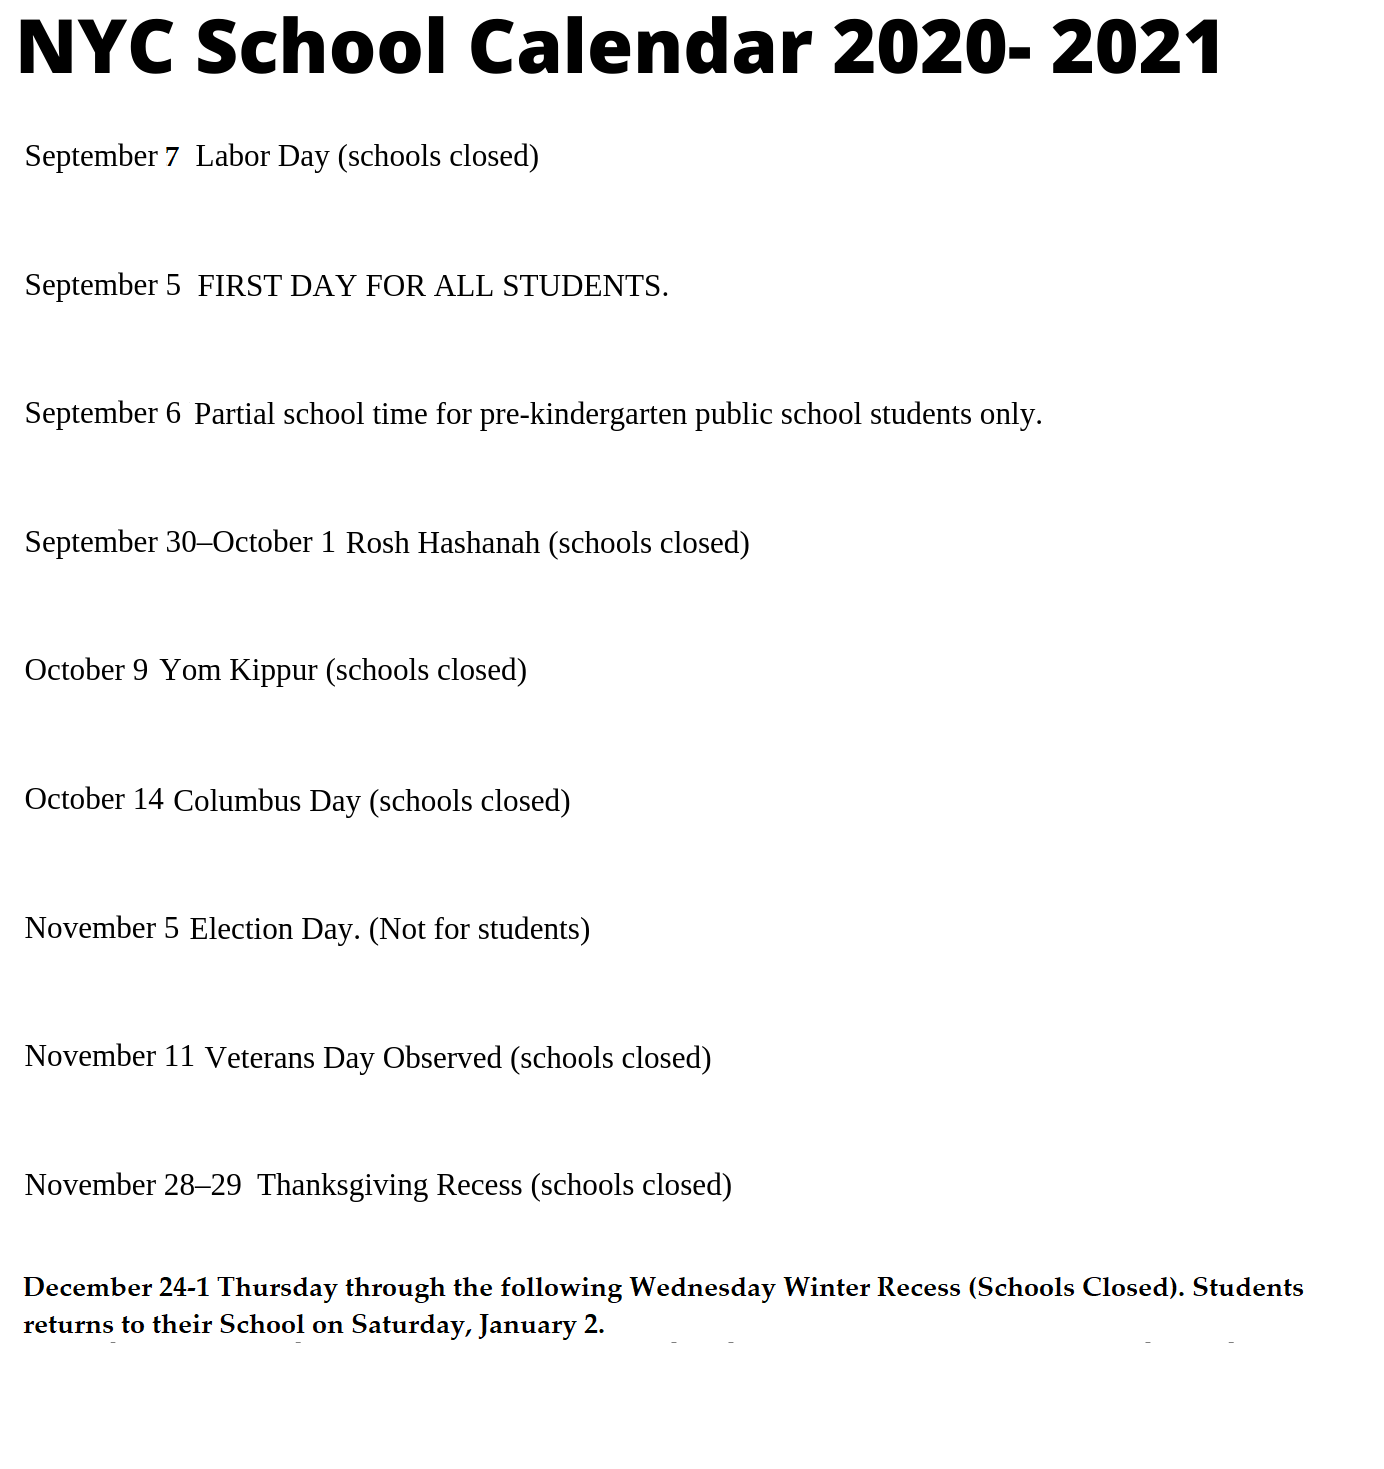 🥰nyc School Holidays Calendar 2020-2021🥰 | Nyc School